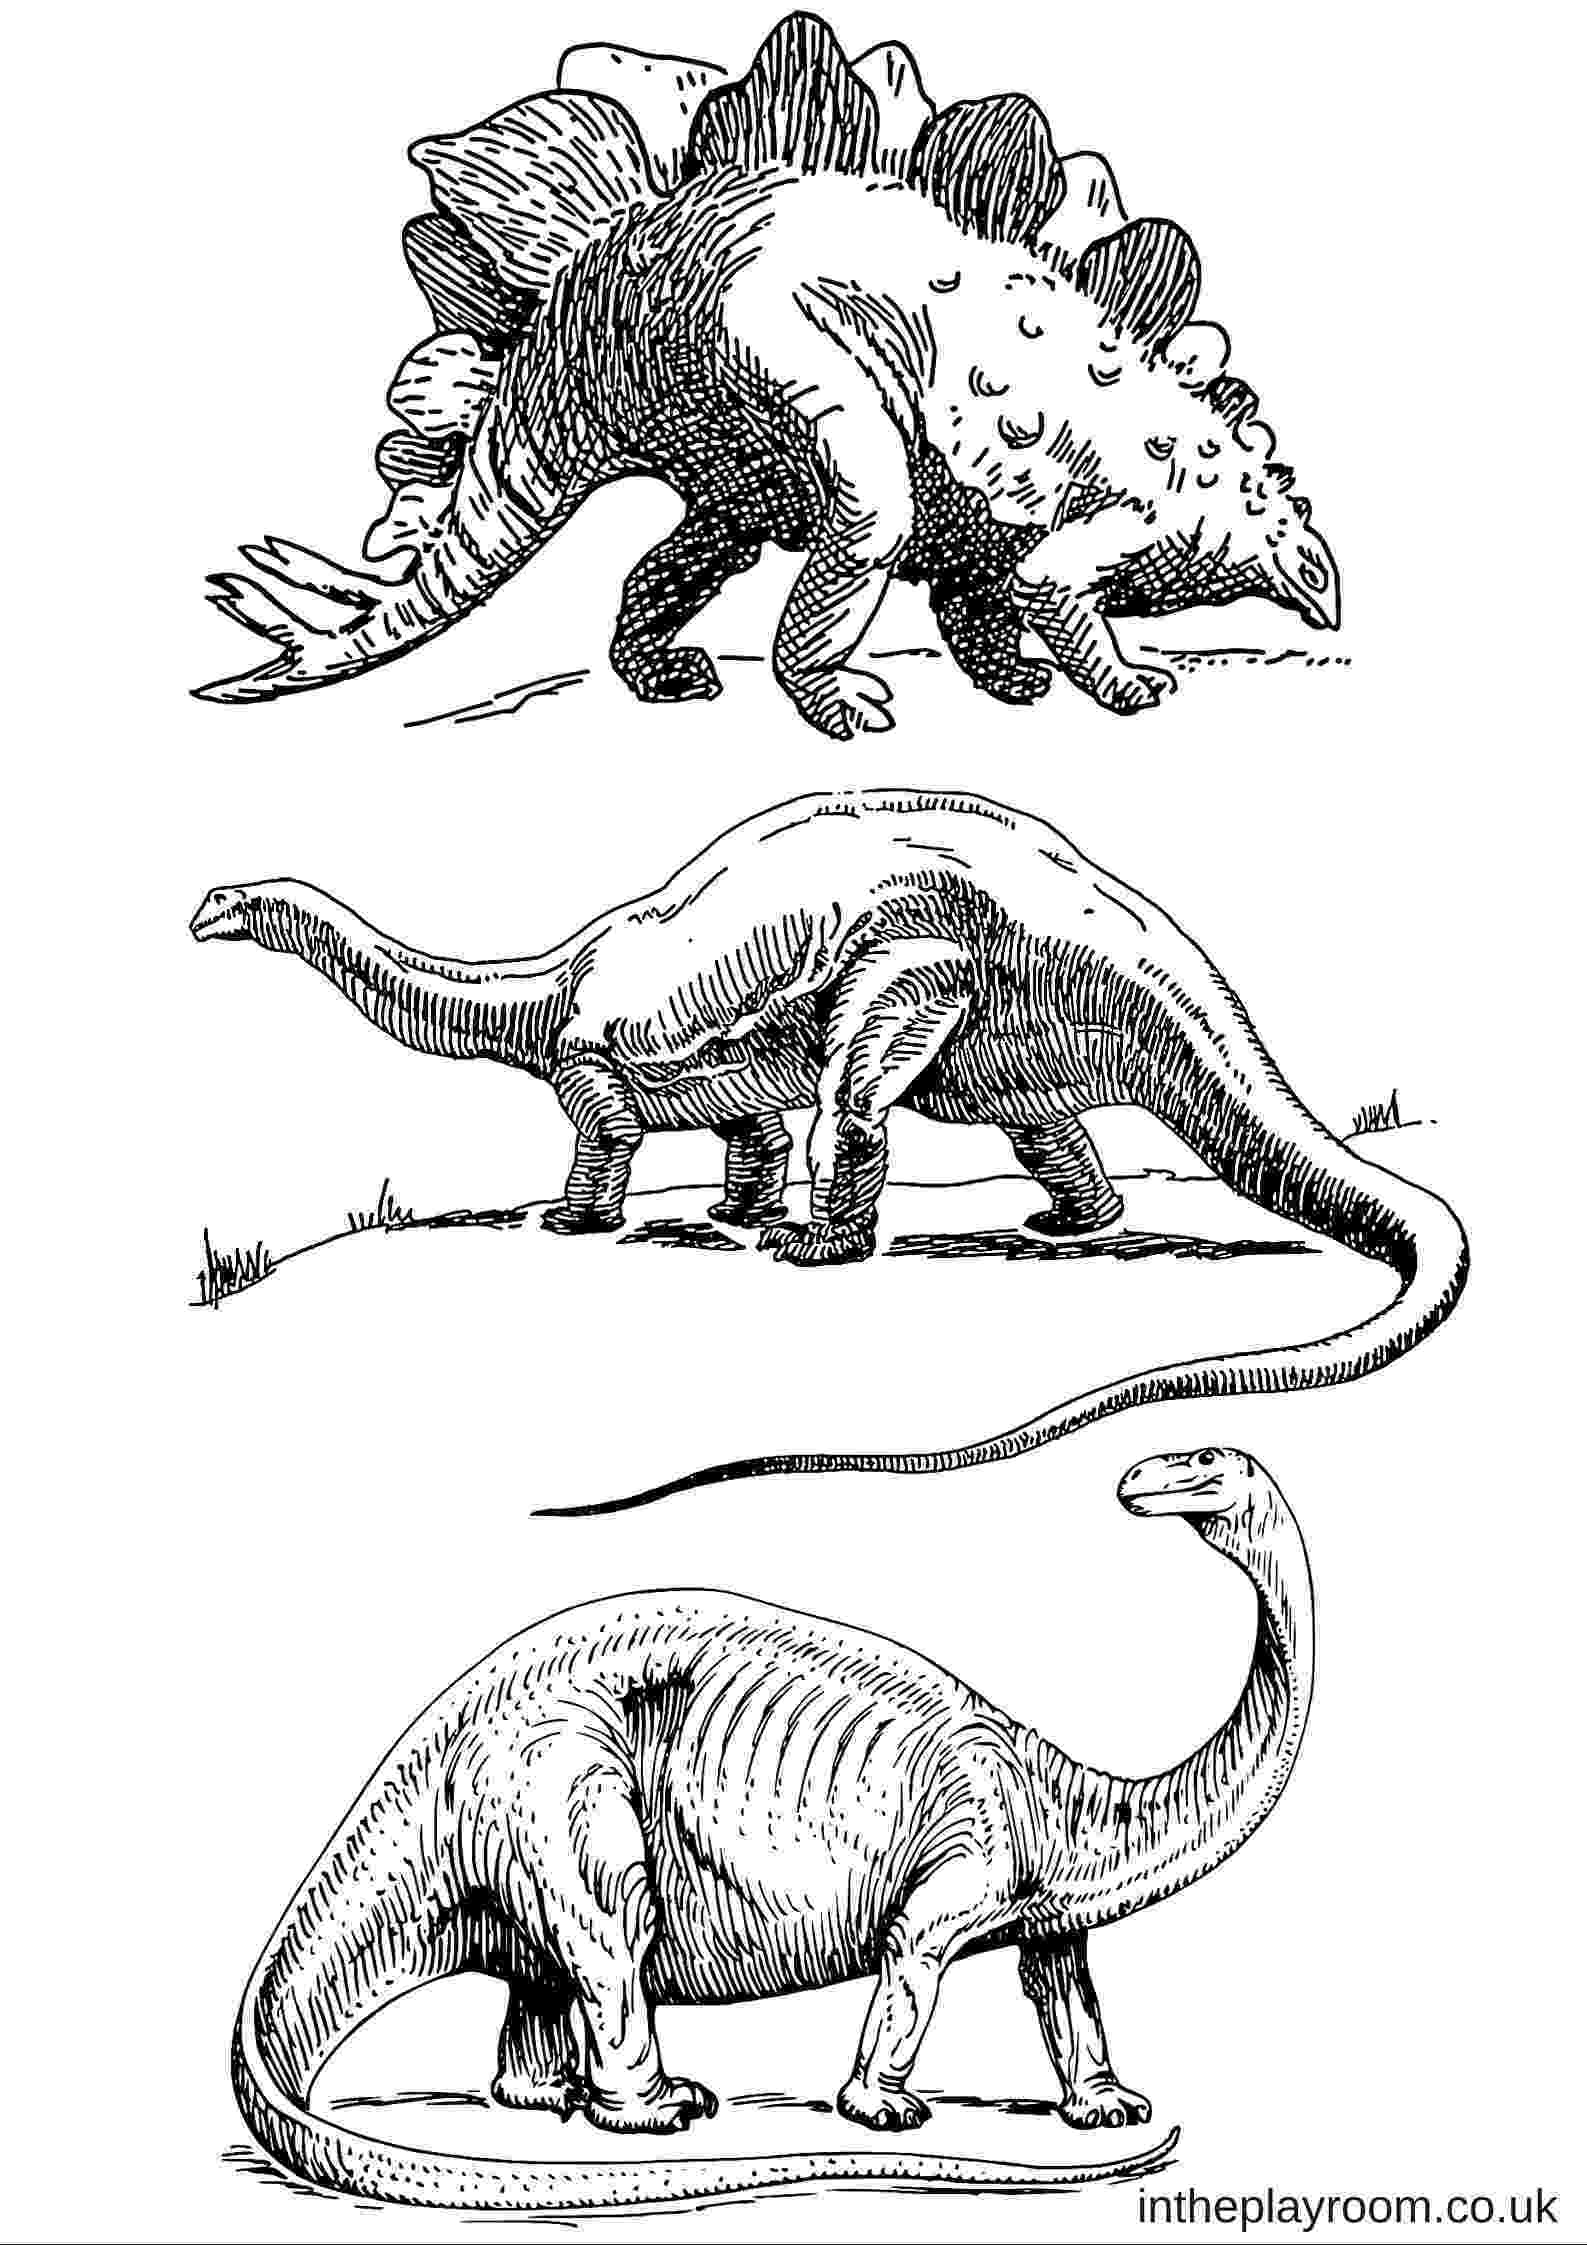 printable dinosaur pictures to color coloring pages dinosaur free printable coloring pages pictures dinosaur to printable color